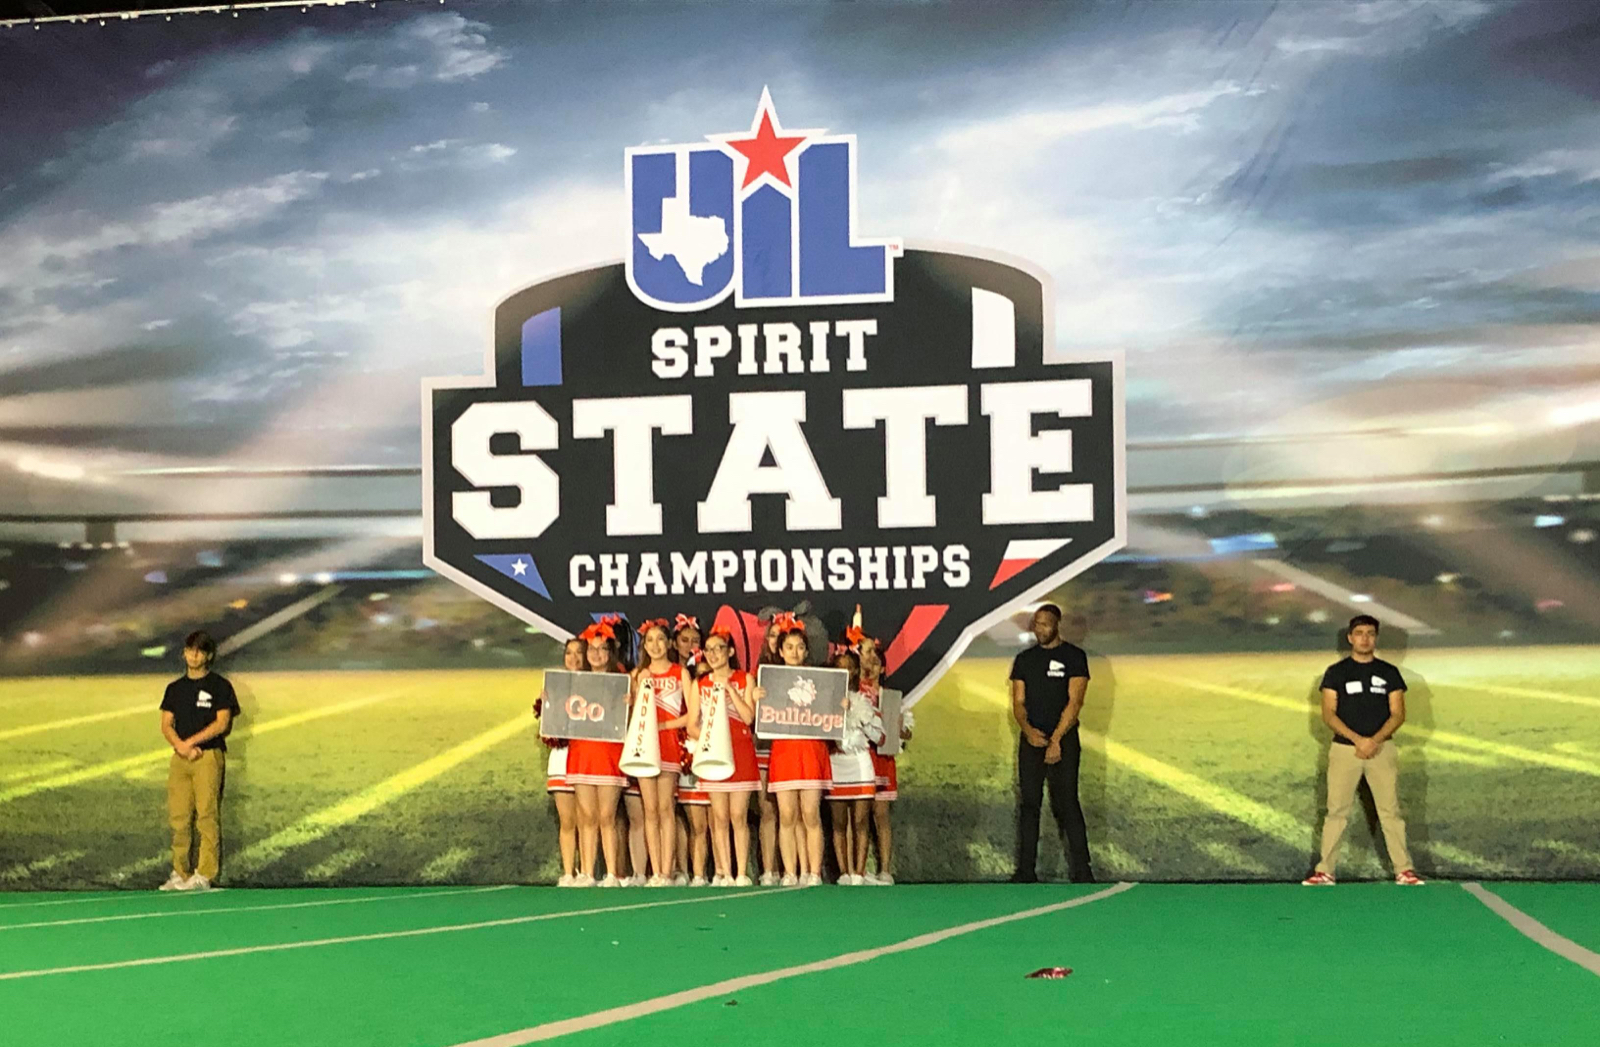 North Dallas cheerleaders compete at Spirit State Championships